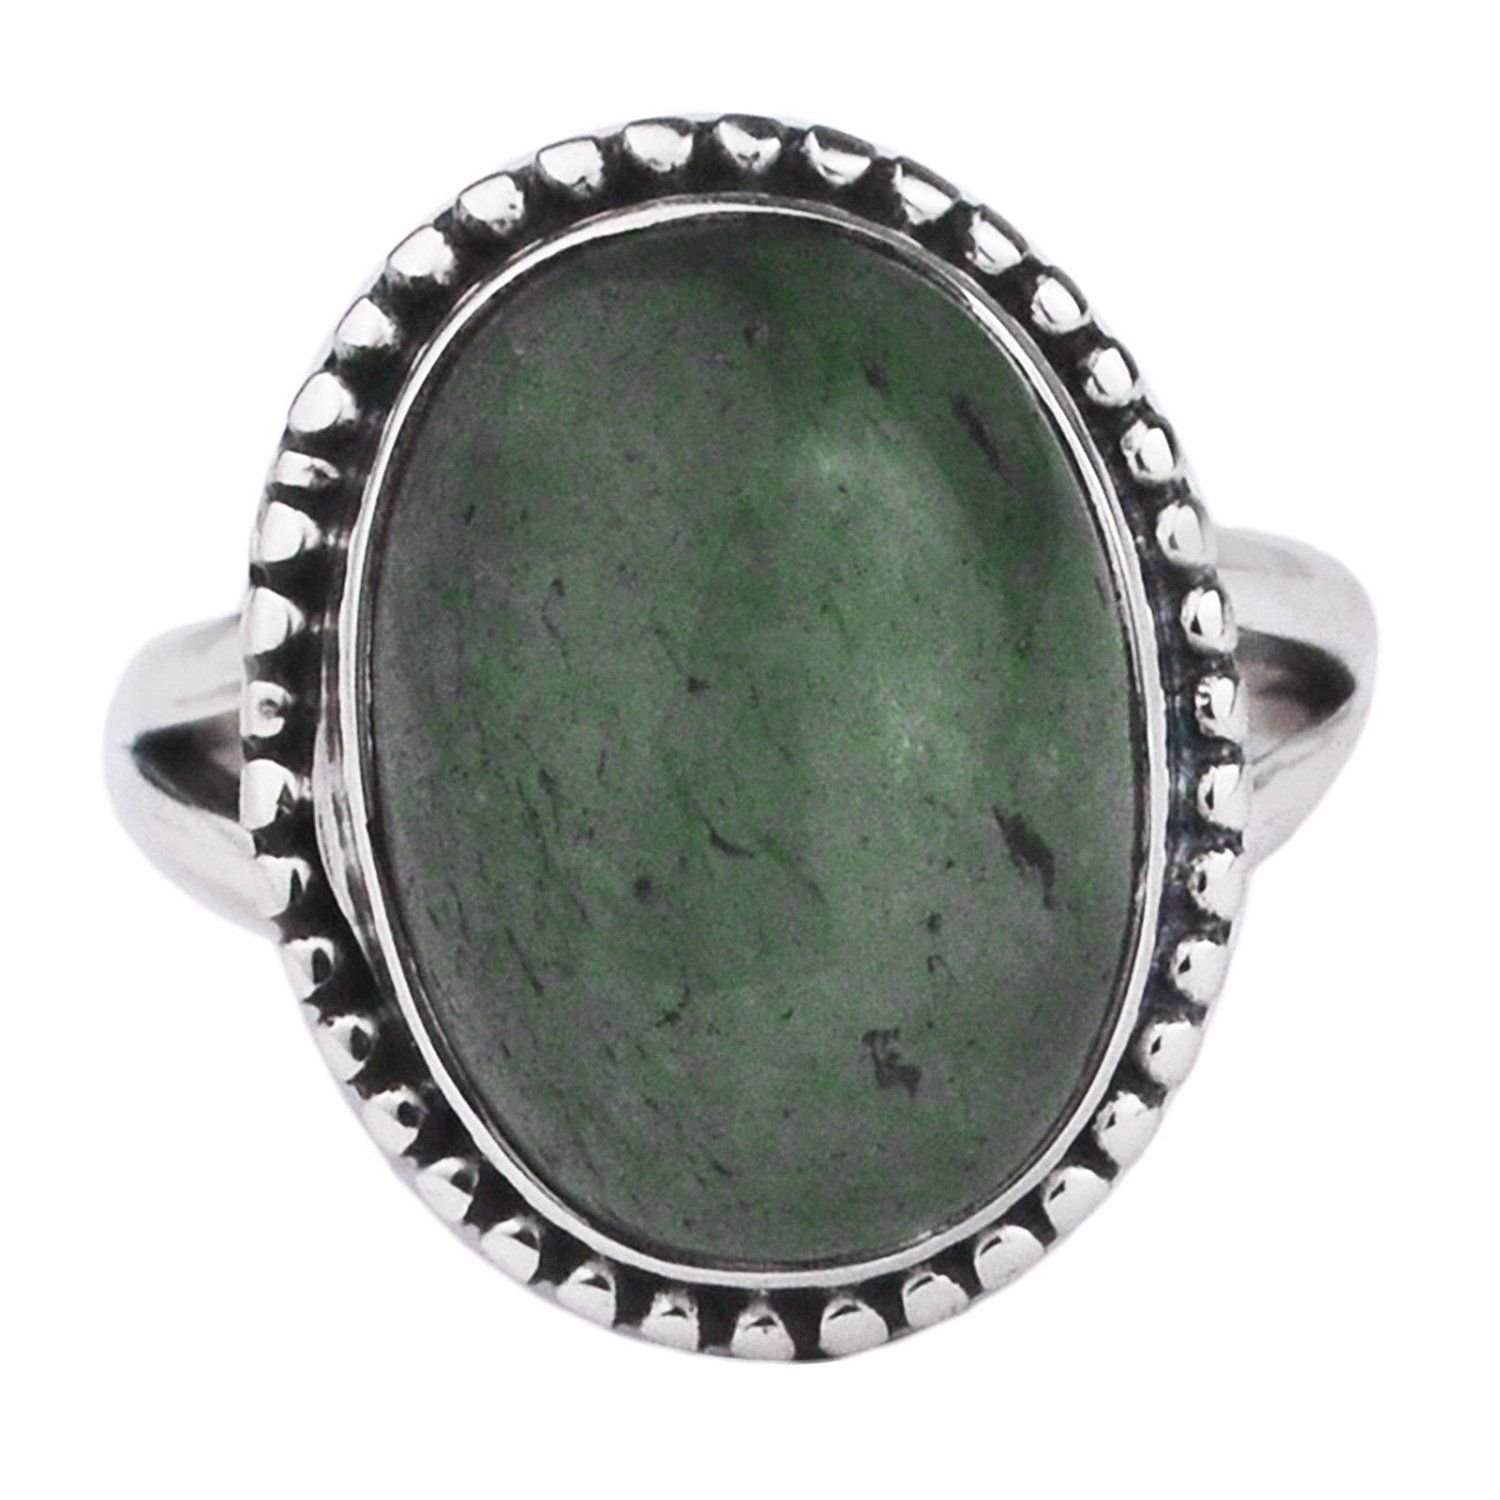 Crystalcraftindia 925 Sterling Silver Green Aventurine Rings Size 7 US 5.74 g